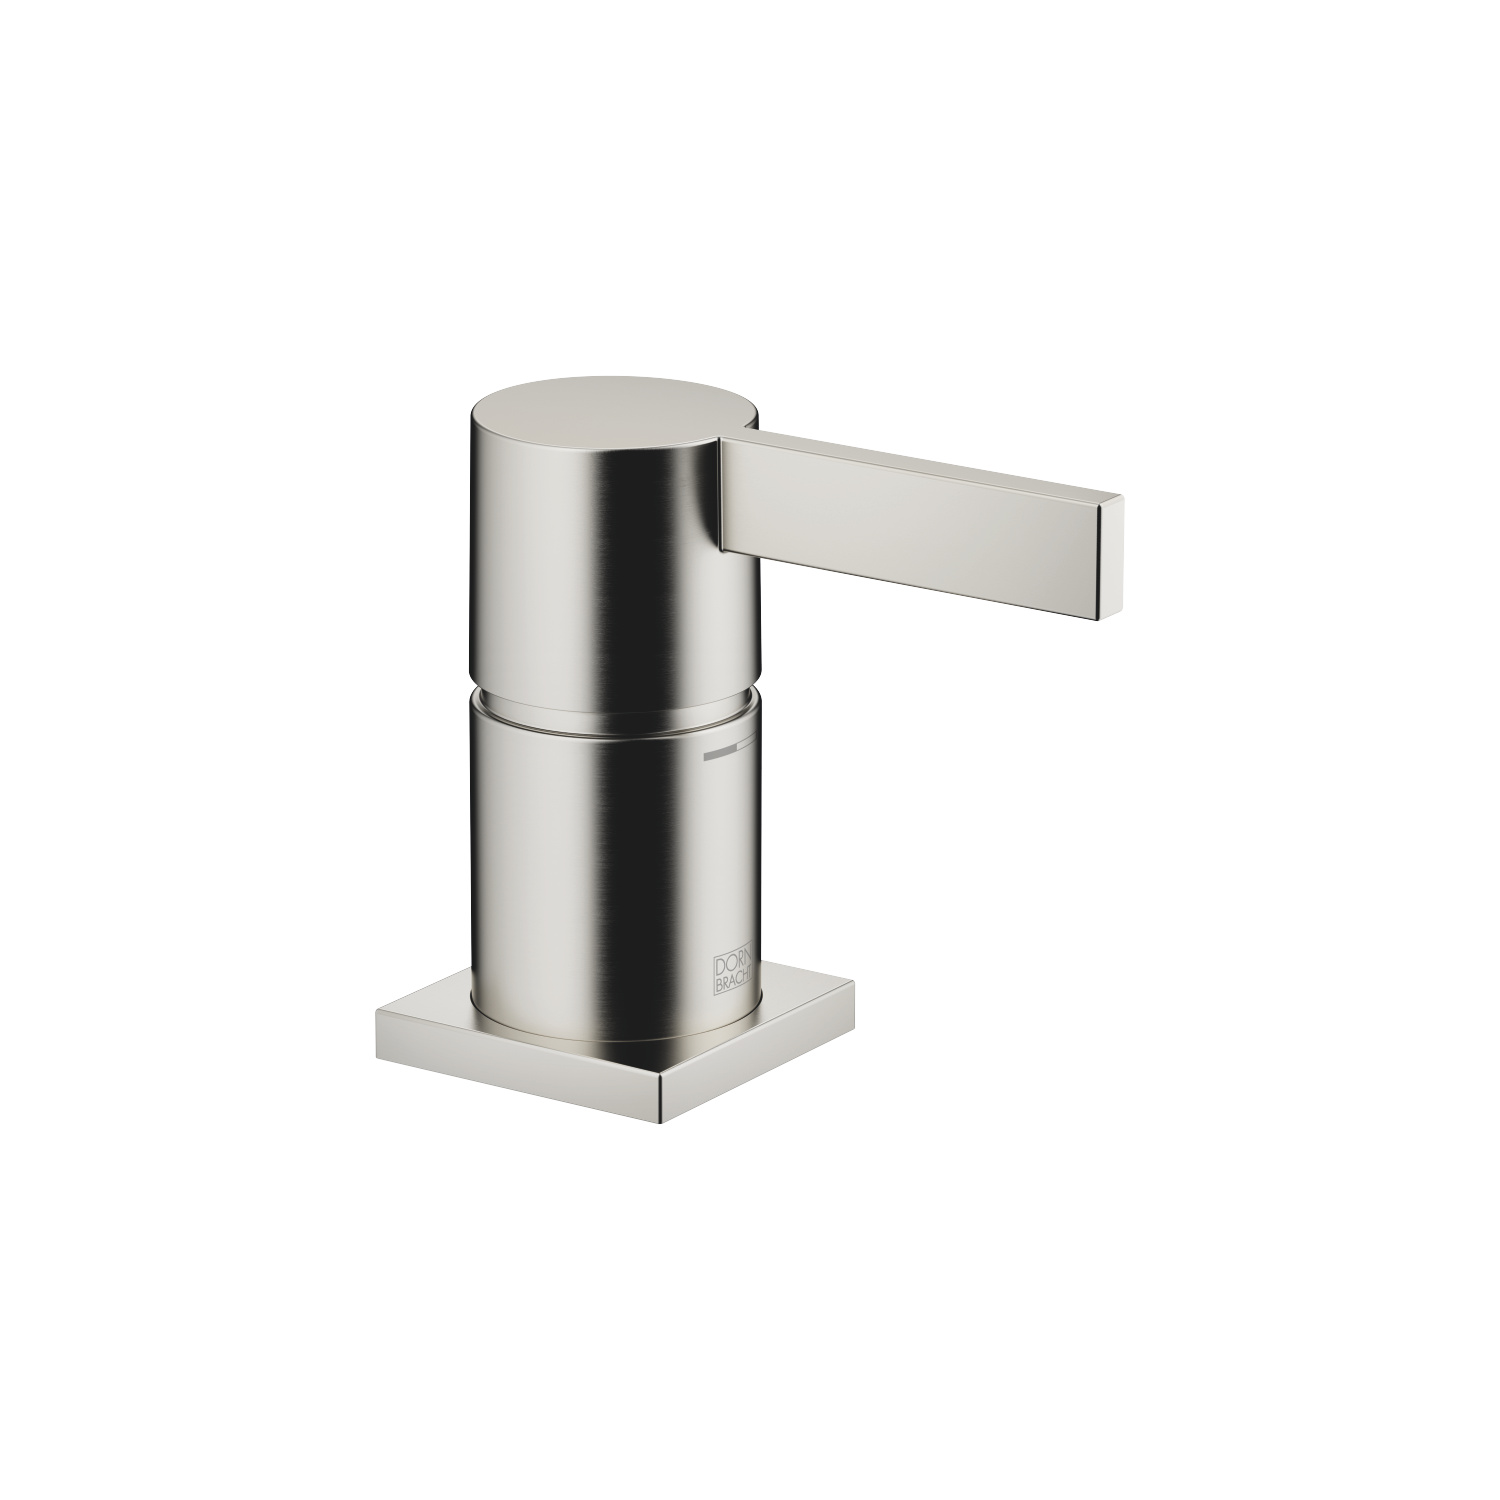 Single-lever bath mixer for bath rim or tile edge installation - platinum matt - 29 300 670-06